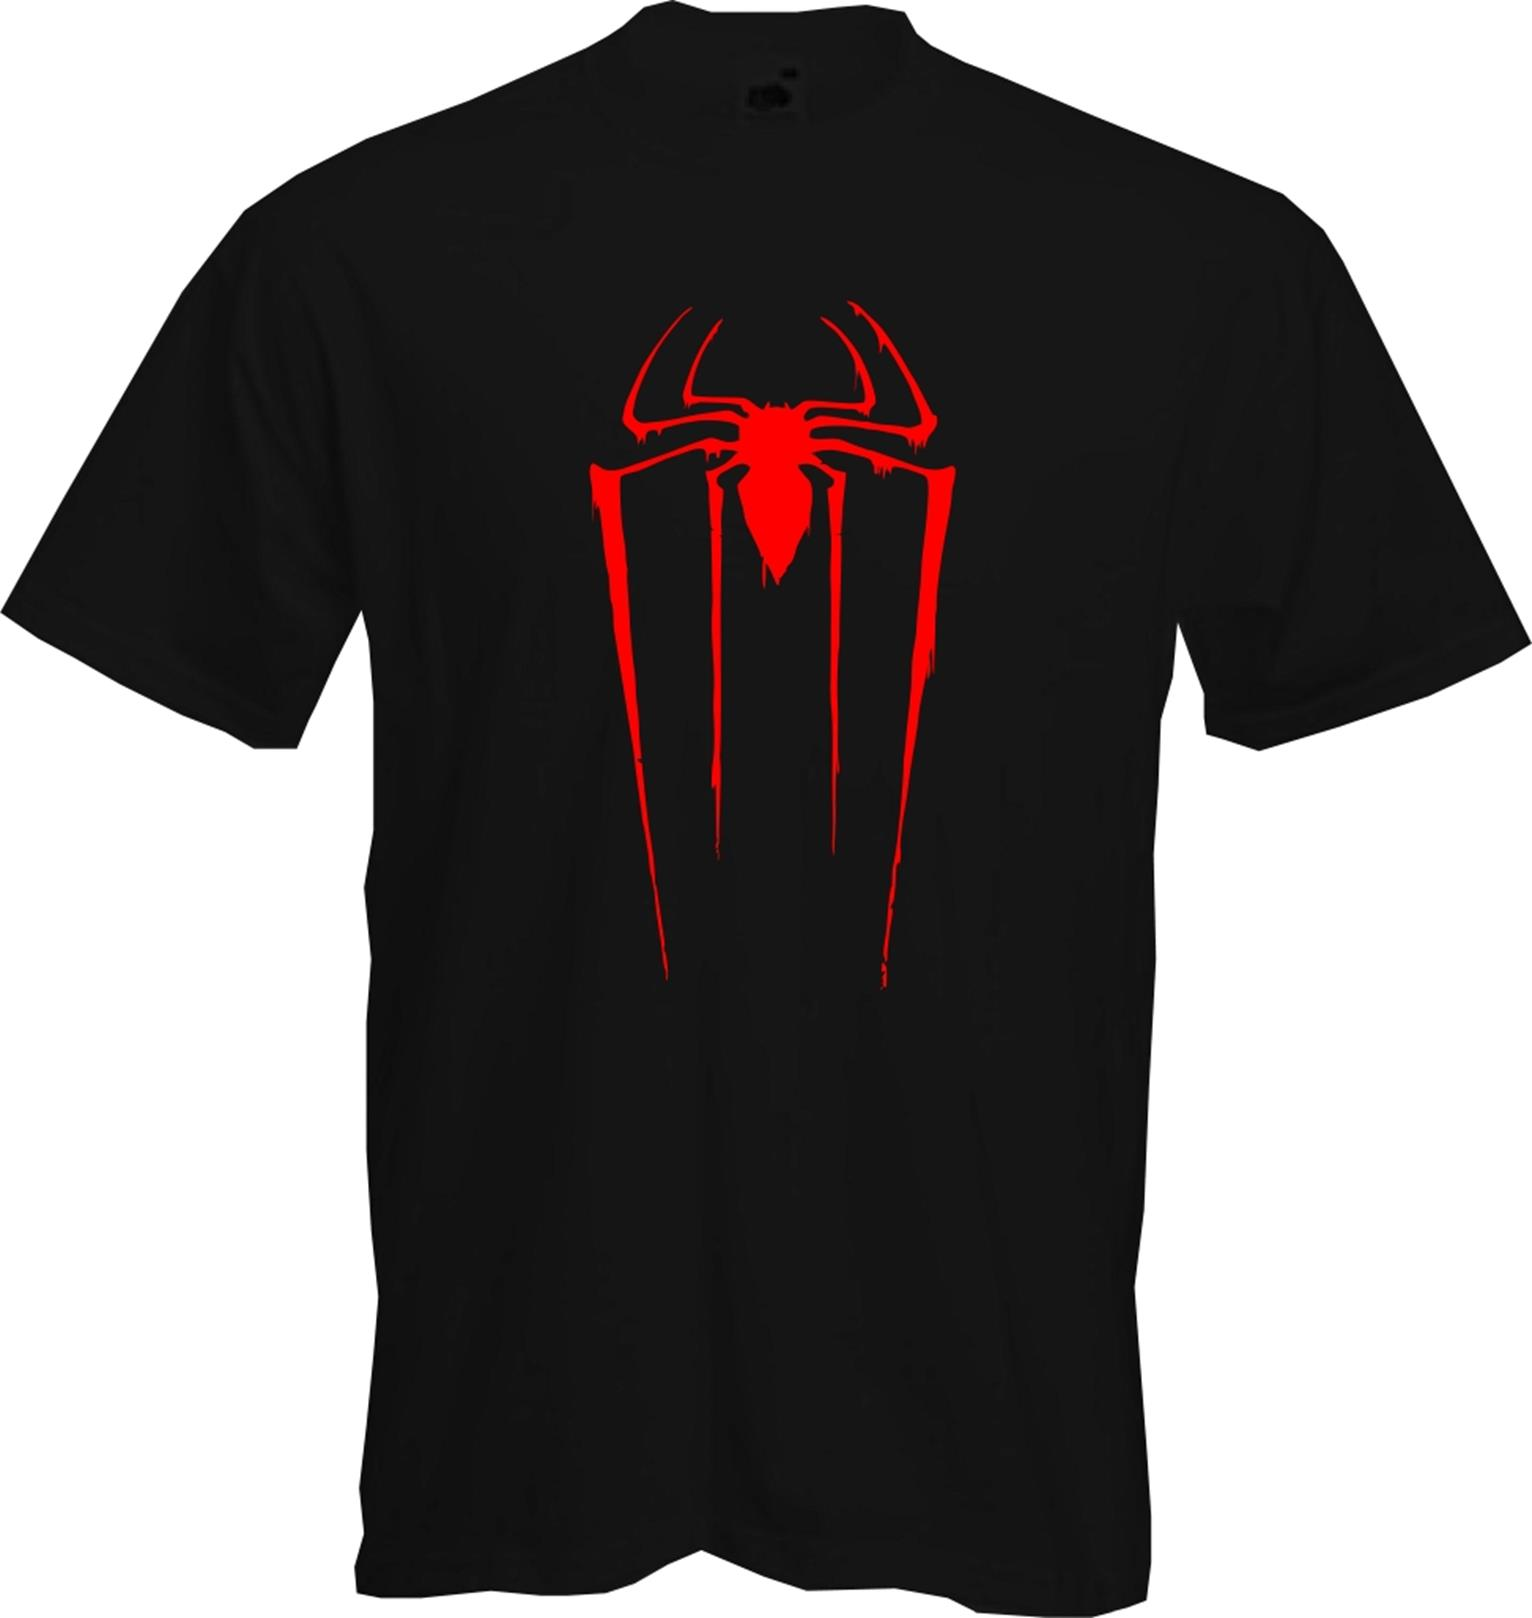 amazing spiderman latest cool current quality t shirt new. Black Bedroom Furniture Sets. Home Design Ideas